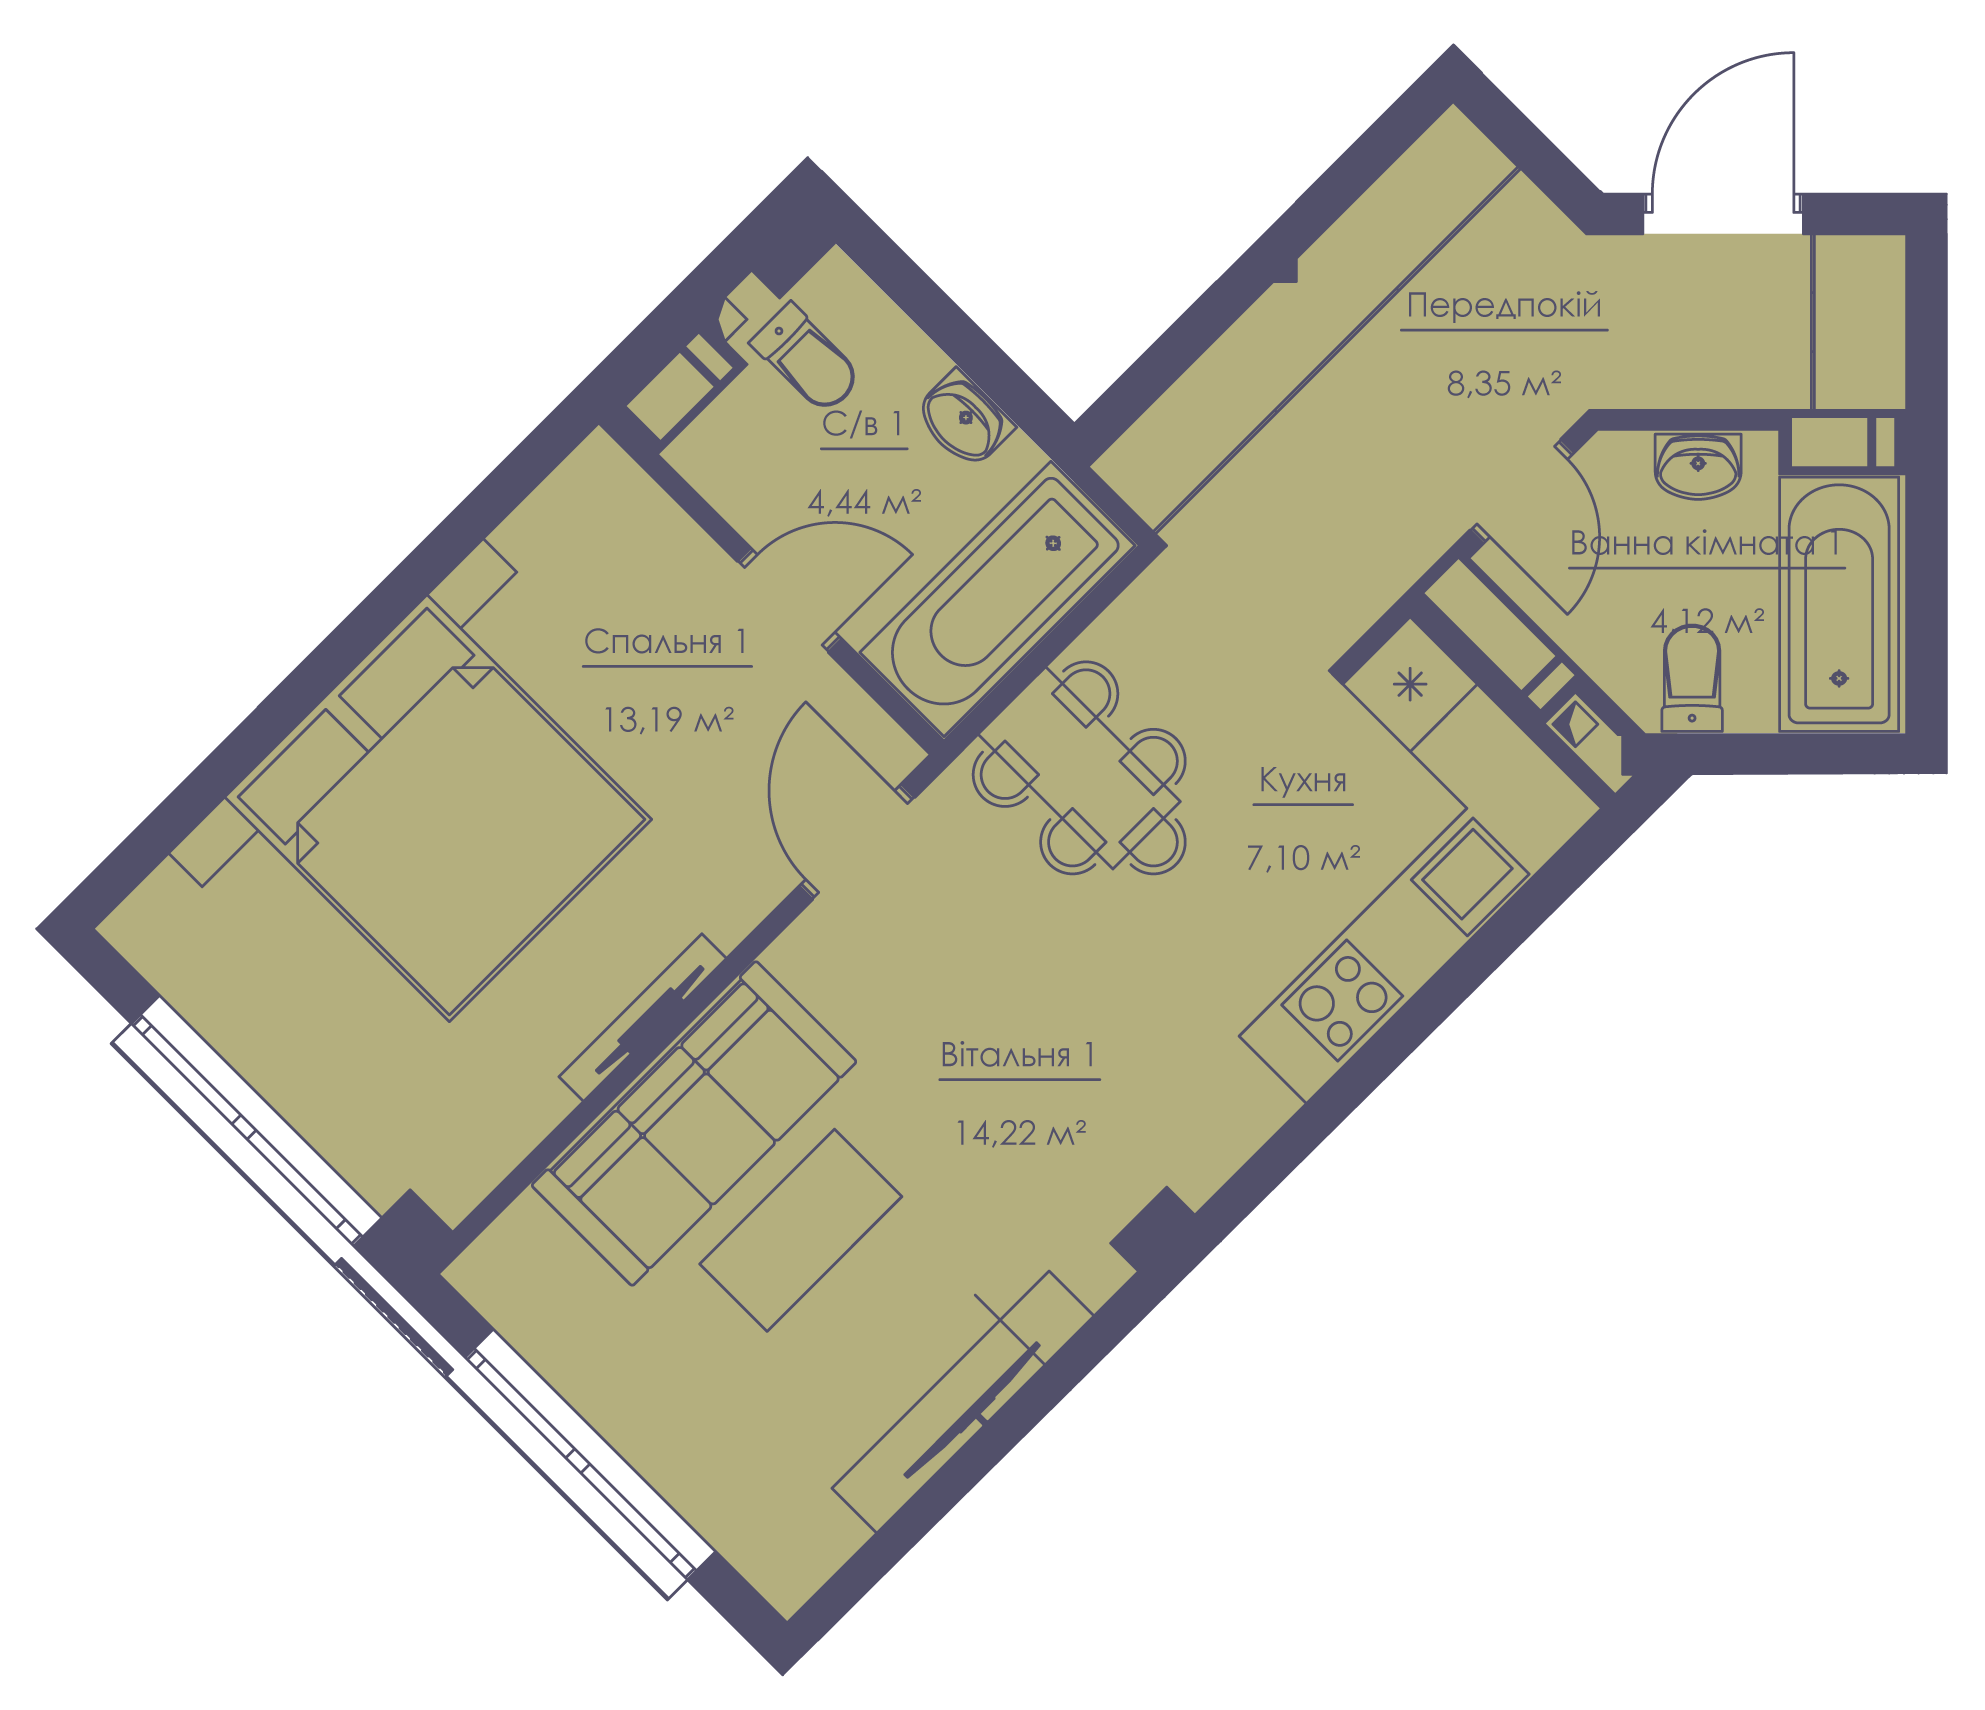 Apartment layout KV_15_1.2m_1_1_3-1